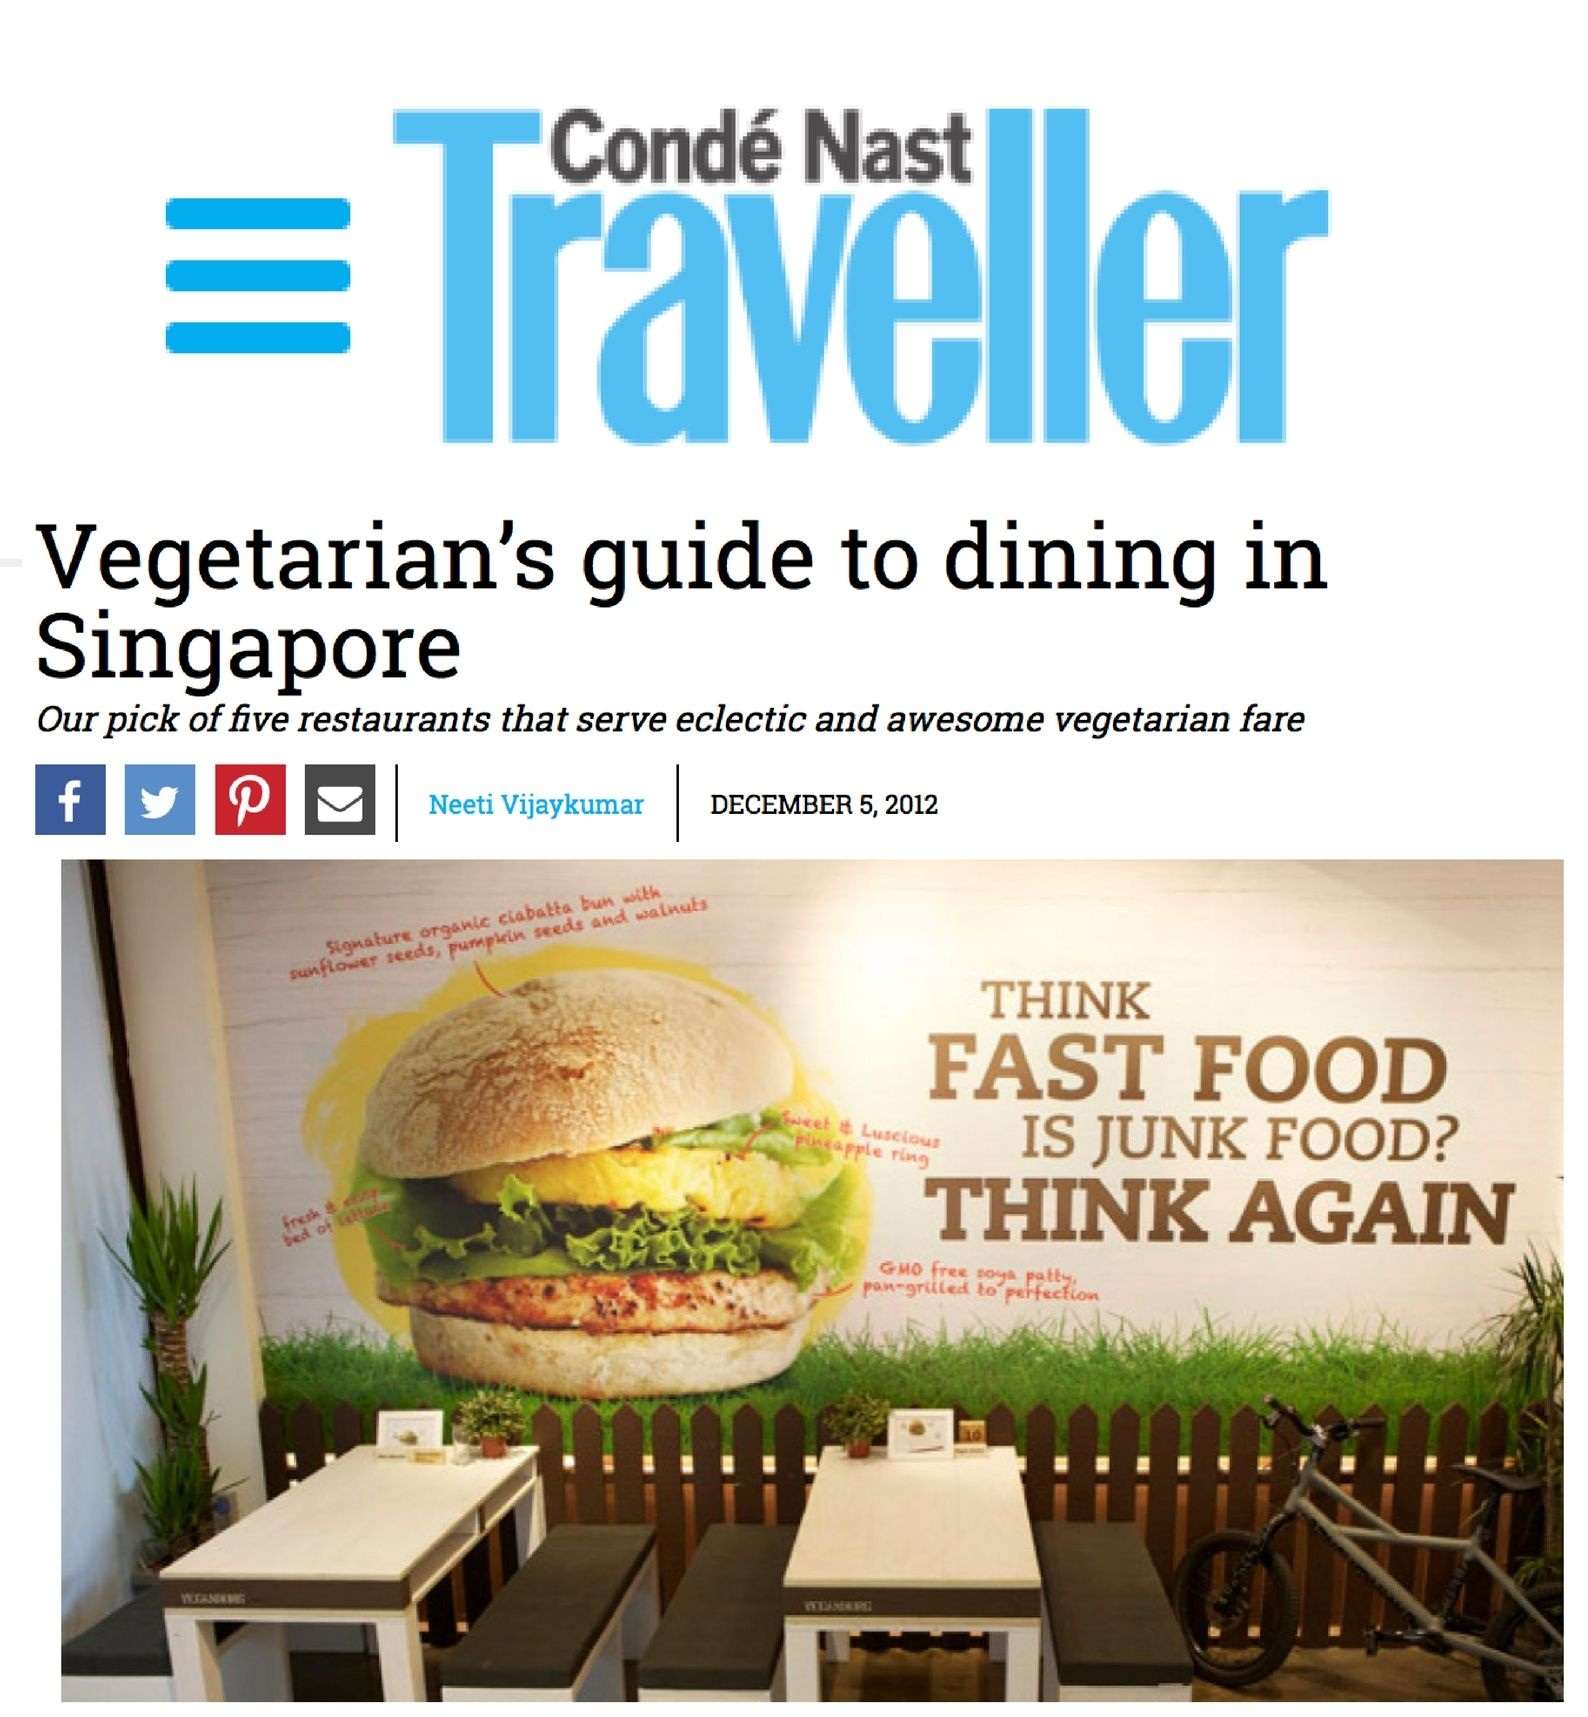 Wondering+where+to+eat+vegetarian+food+in+Singapore_+Try+LingZhi%2C+Whole+Earth%2C+Original+Sin%2C+Veganburg+and+more.jpg